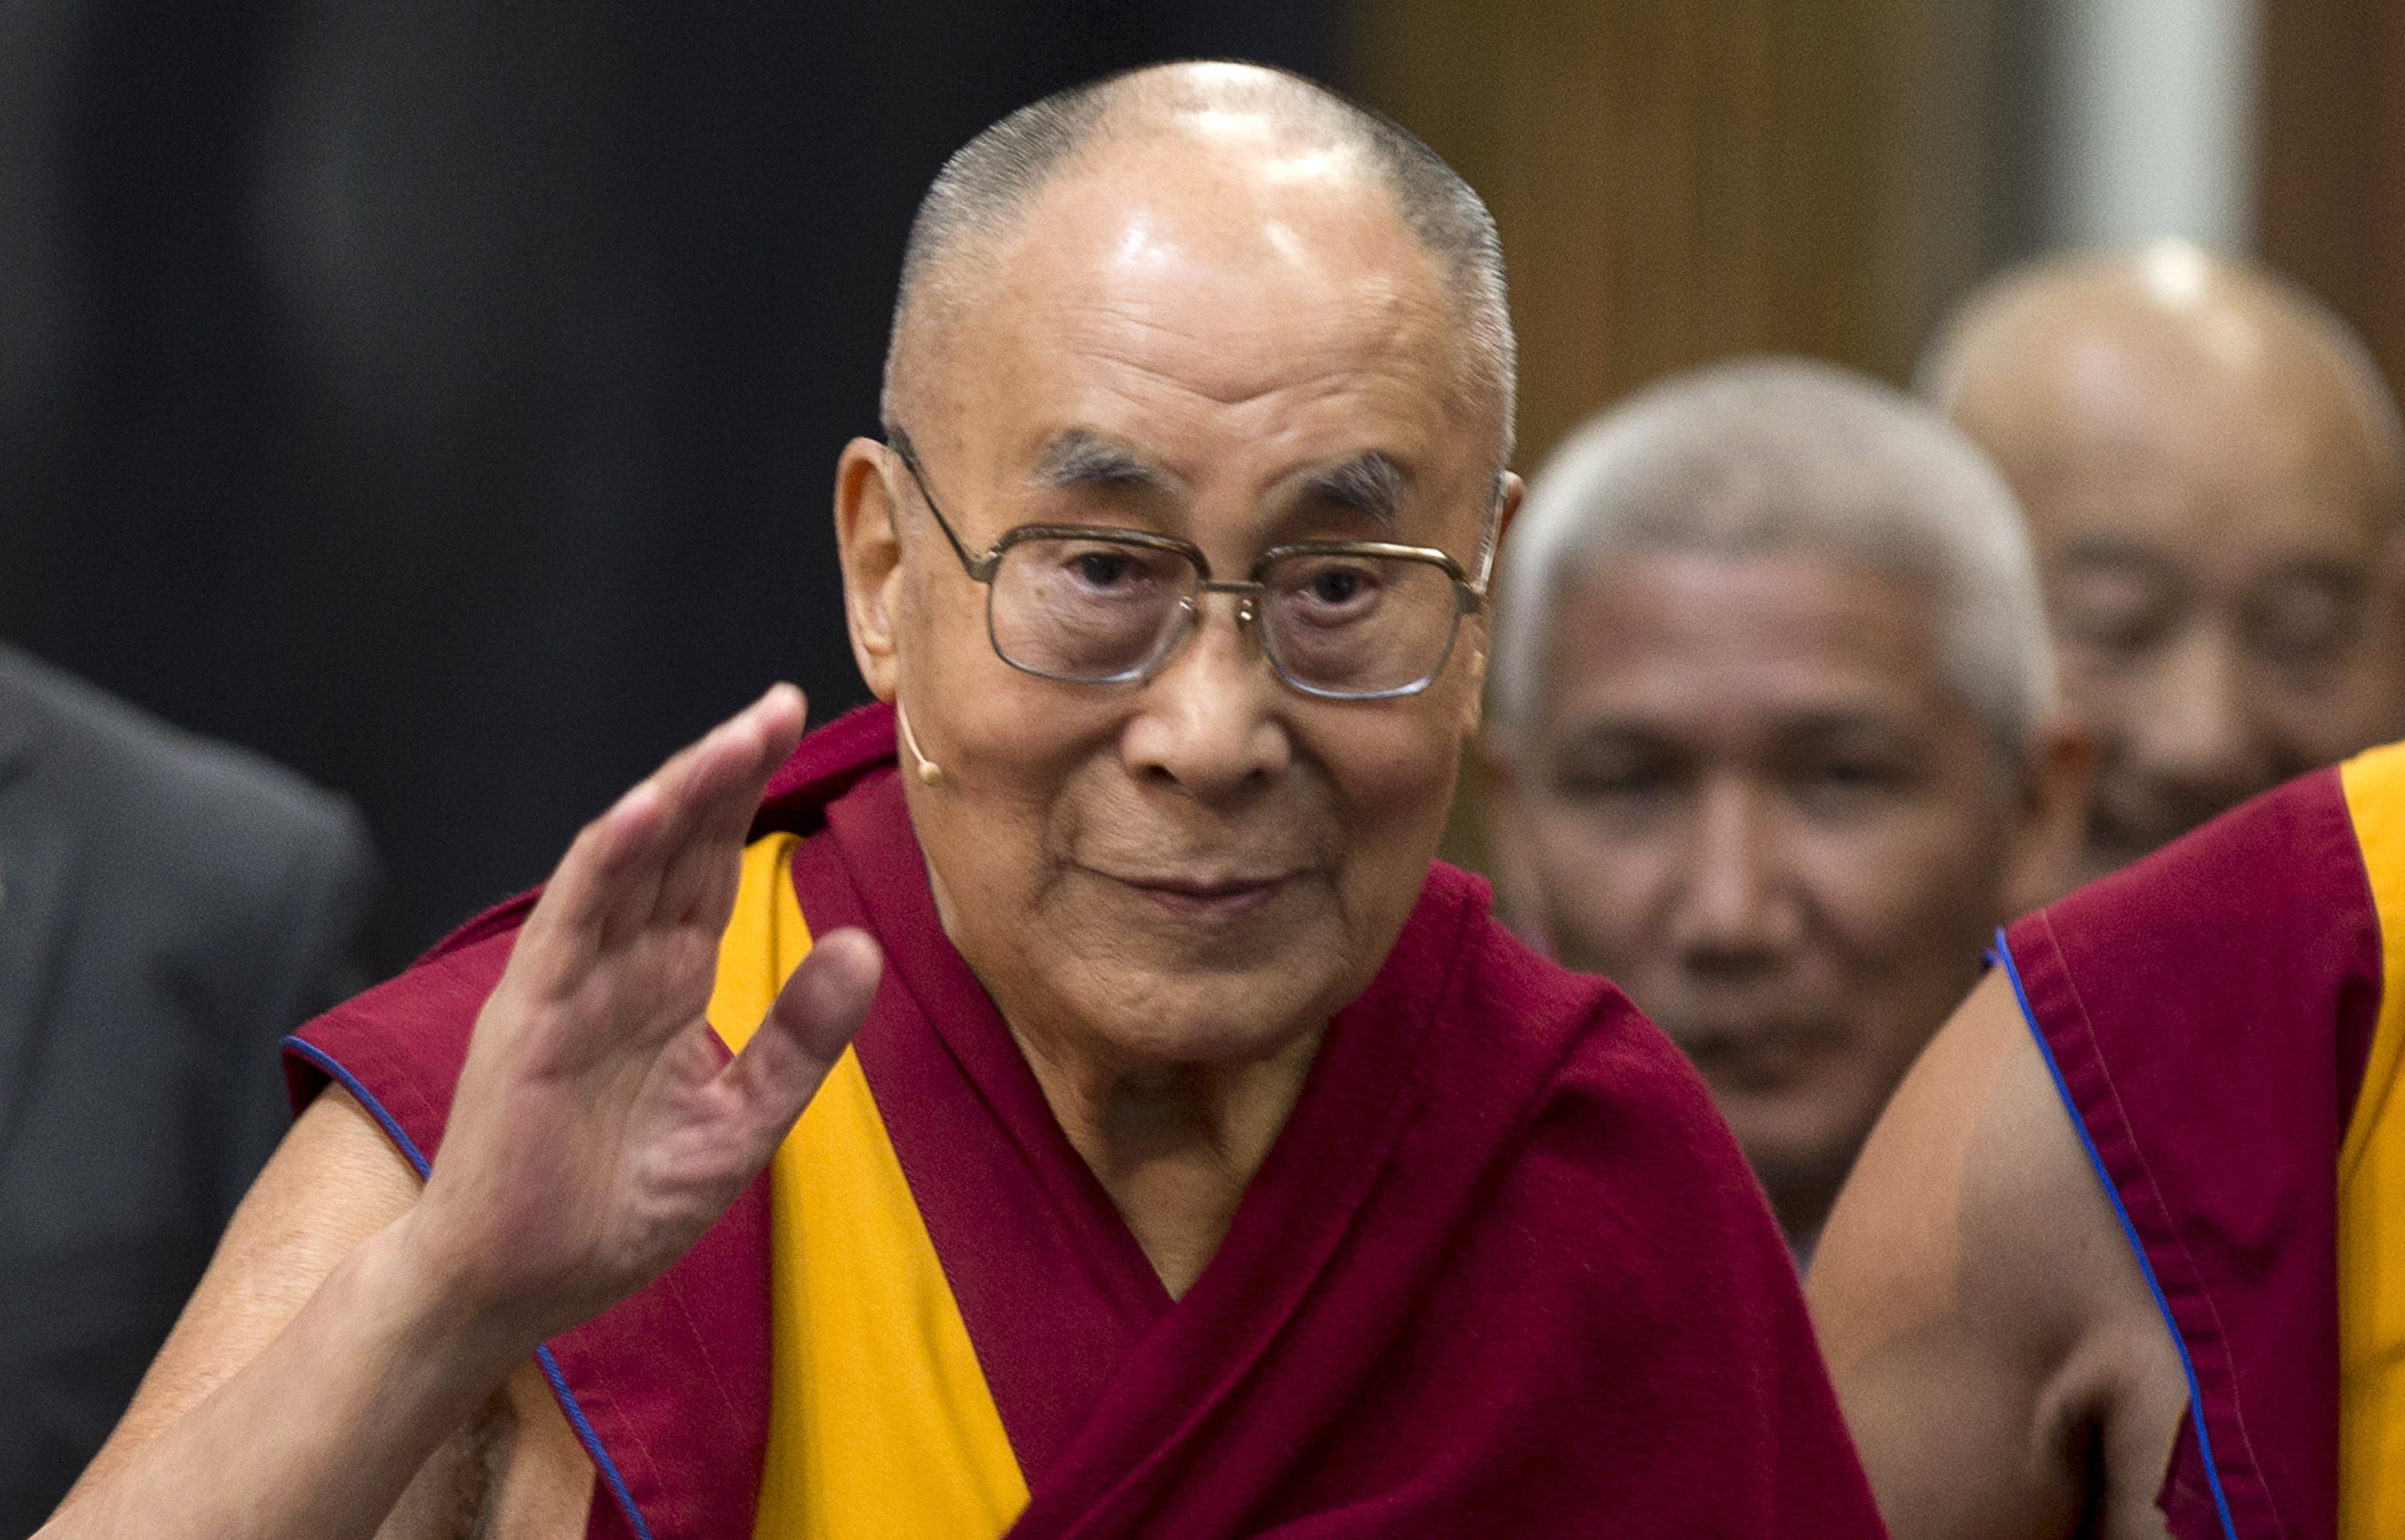 "FILE - In this Sept. 15, 2018, file photo, Tibetan spiritual leader the Dalai Lama greets journalists during the opening of the exhibition titled ""Buddha's Life"" at the Nieuwe Kerk church in Amsterdam, Netherlands. The Dalai Lama has been hospitalised in the Indian capital with chest infection and is feeling much better. The Tibetan spiritual leader's spokesman Tenzin Taklha says the Dalai Lama is under medication and likely to spend a day or two in the hospital. The Dalai Lama flew to New Delhi from Dharmsala for consultations with doctors and was hospitaliszd on Tuesday, April 9, 2019. (AP Photo/Peter Dejong, File)"